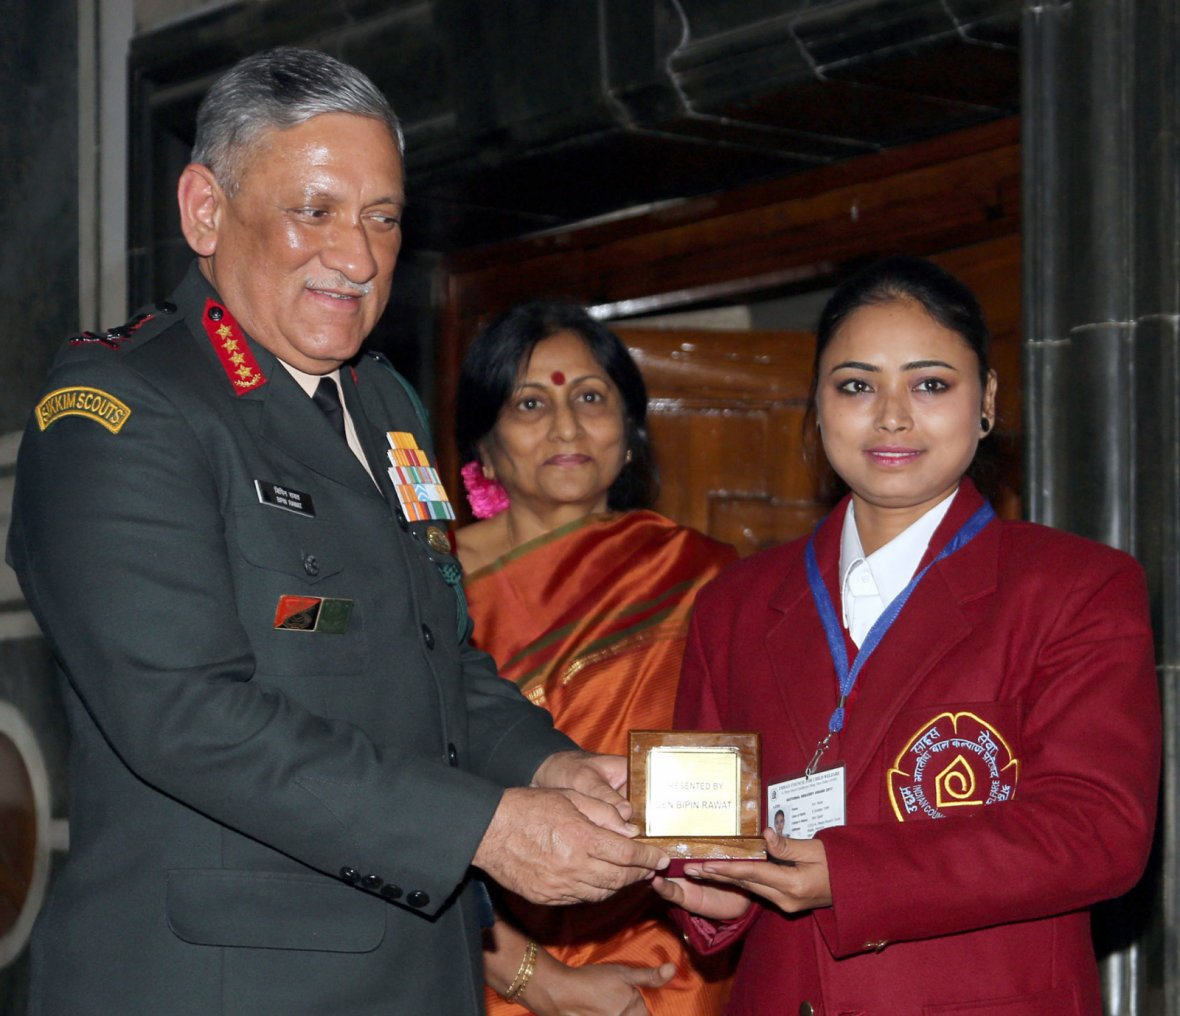 Chief of Army Staff, General Bipin Rawat felicitating Nazia who has won the Bharat Award for her daring effort to take on the illegal business of gambling